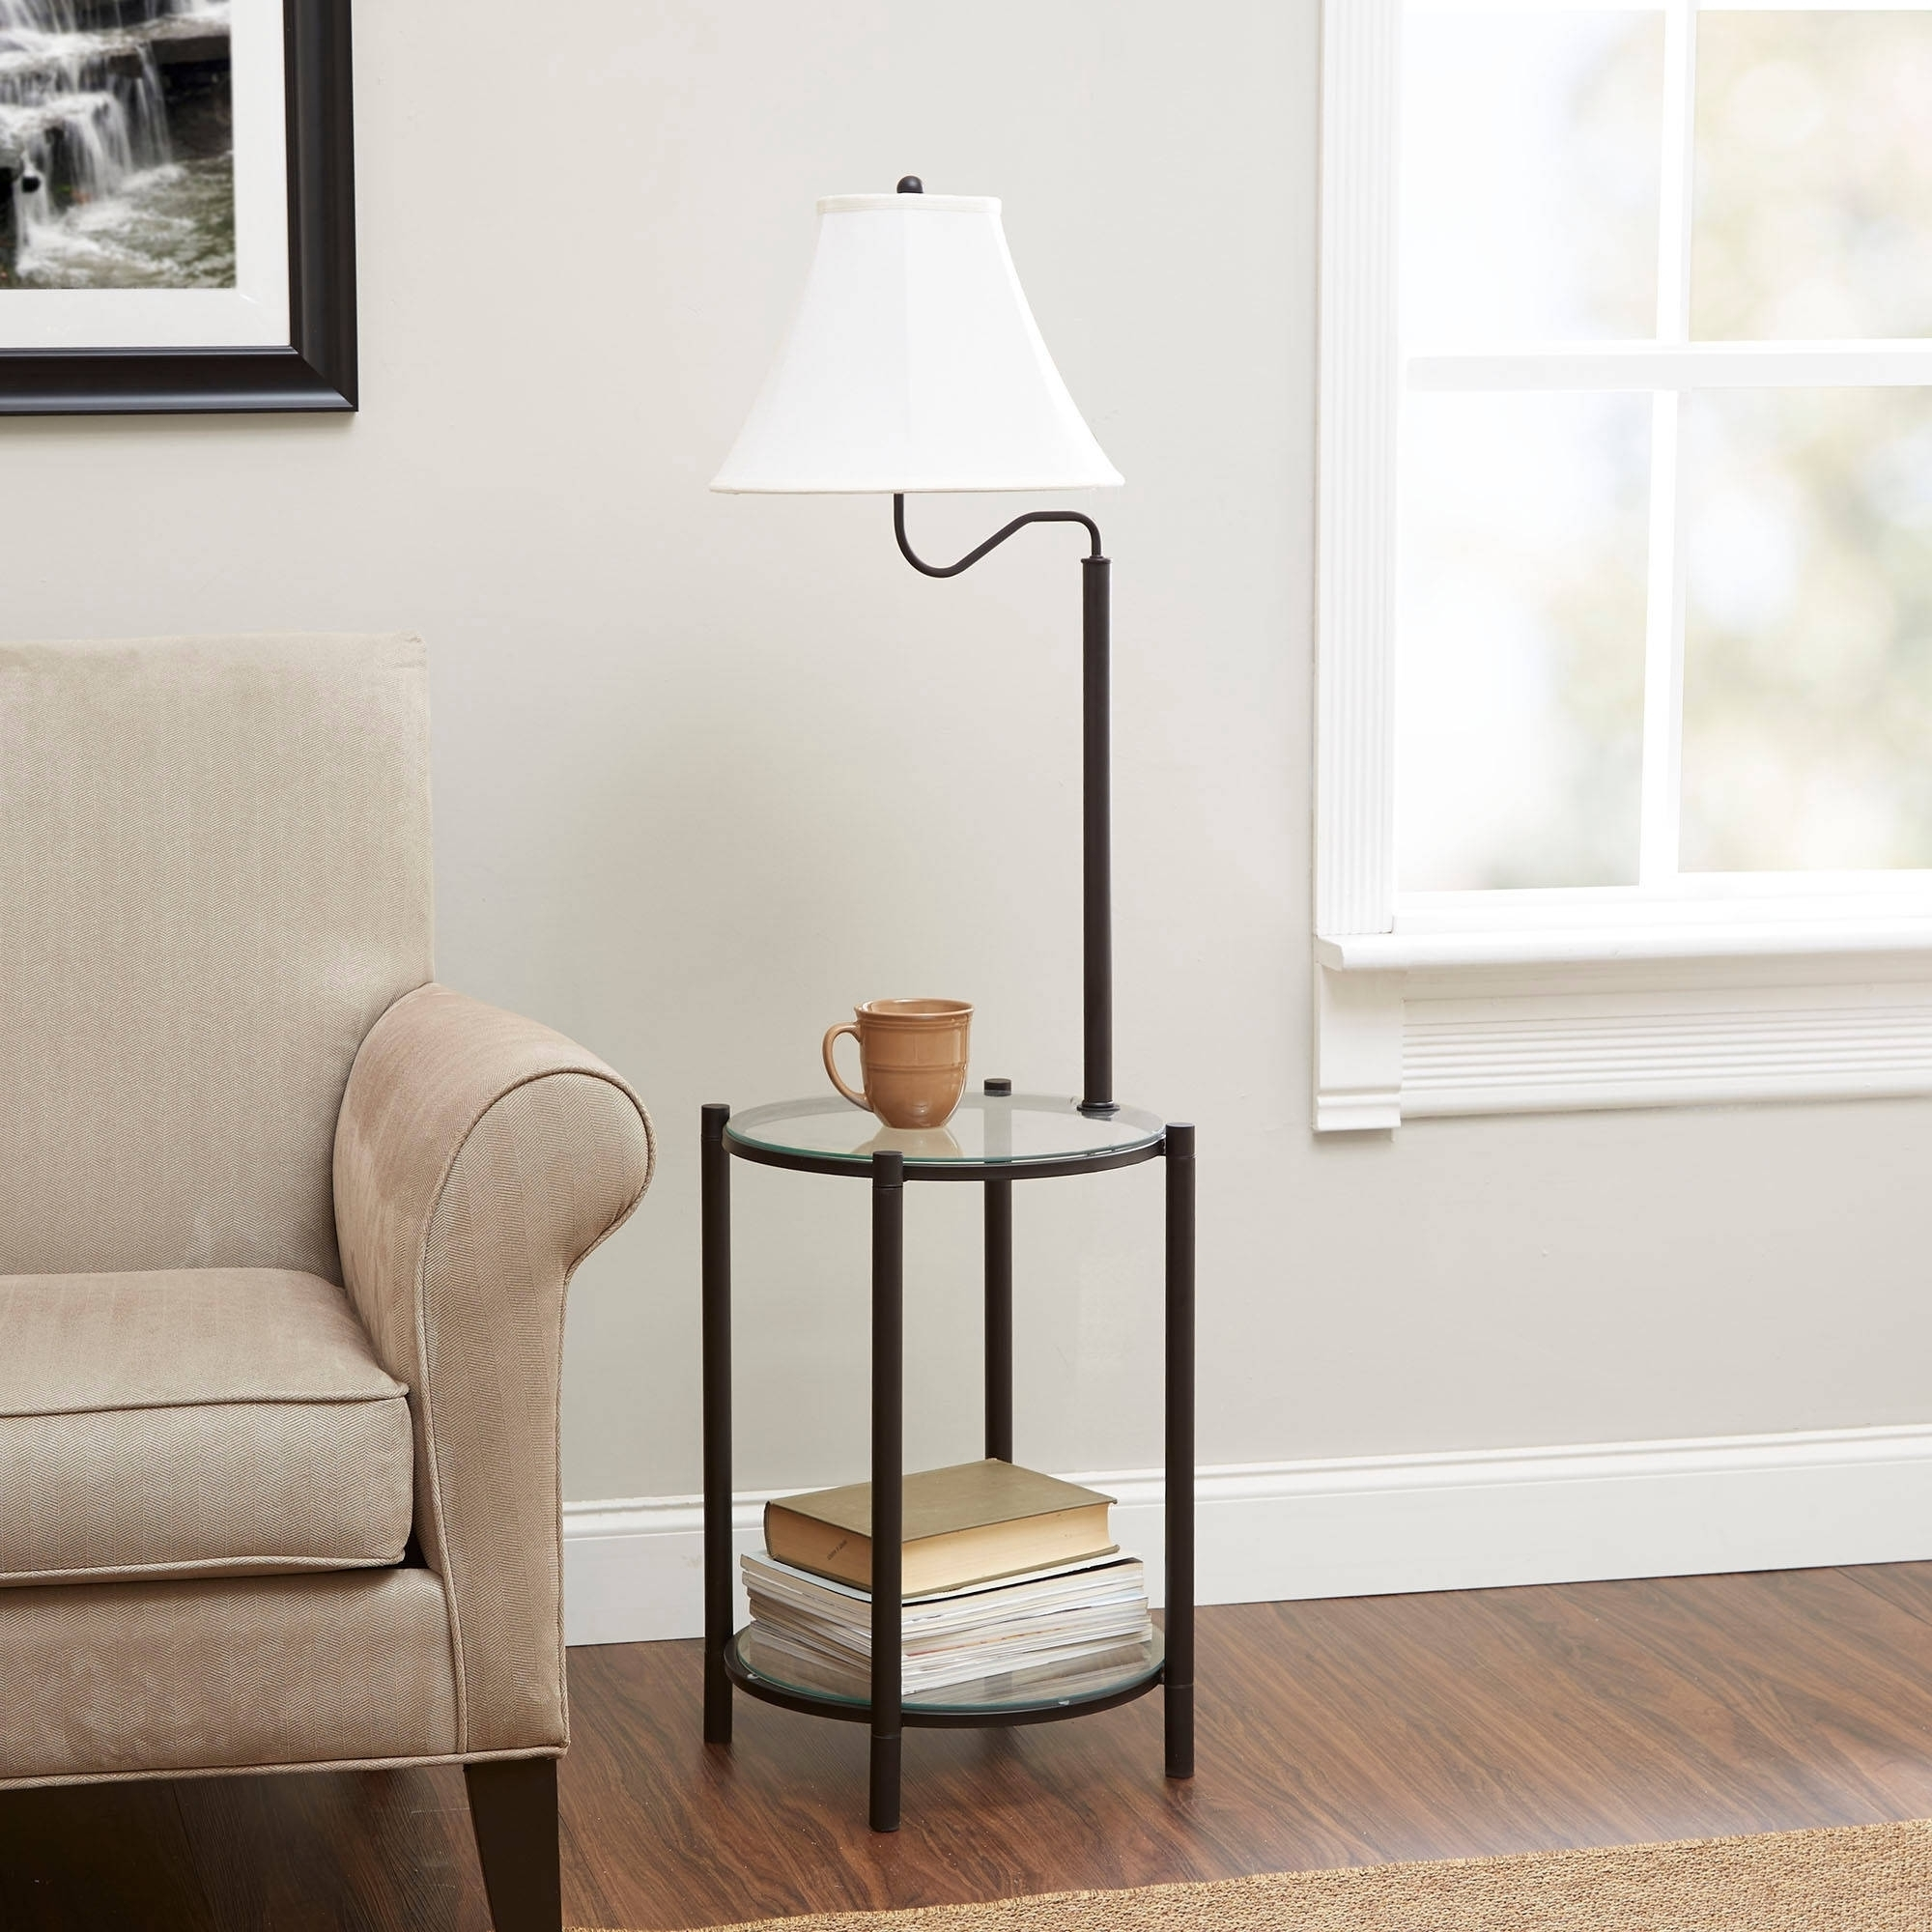 Recent Top 65 Terrific Led Light Bulbs Walmart Bedside Table Lamps For With Regard To Walmart Living Room Table Lamps (View 6 of 15)